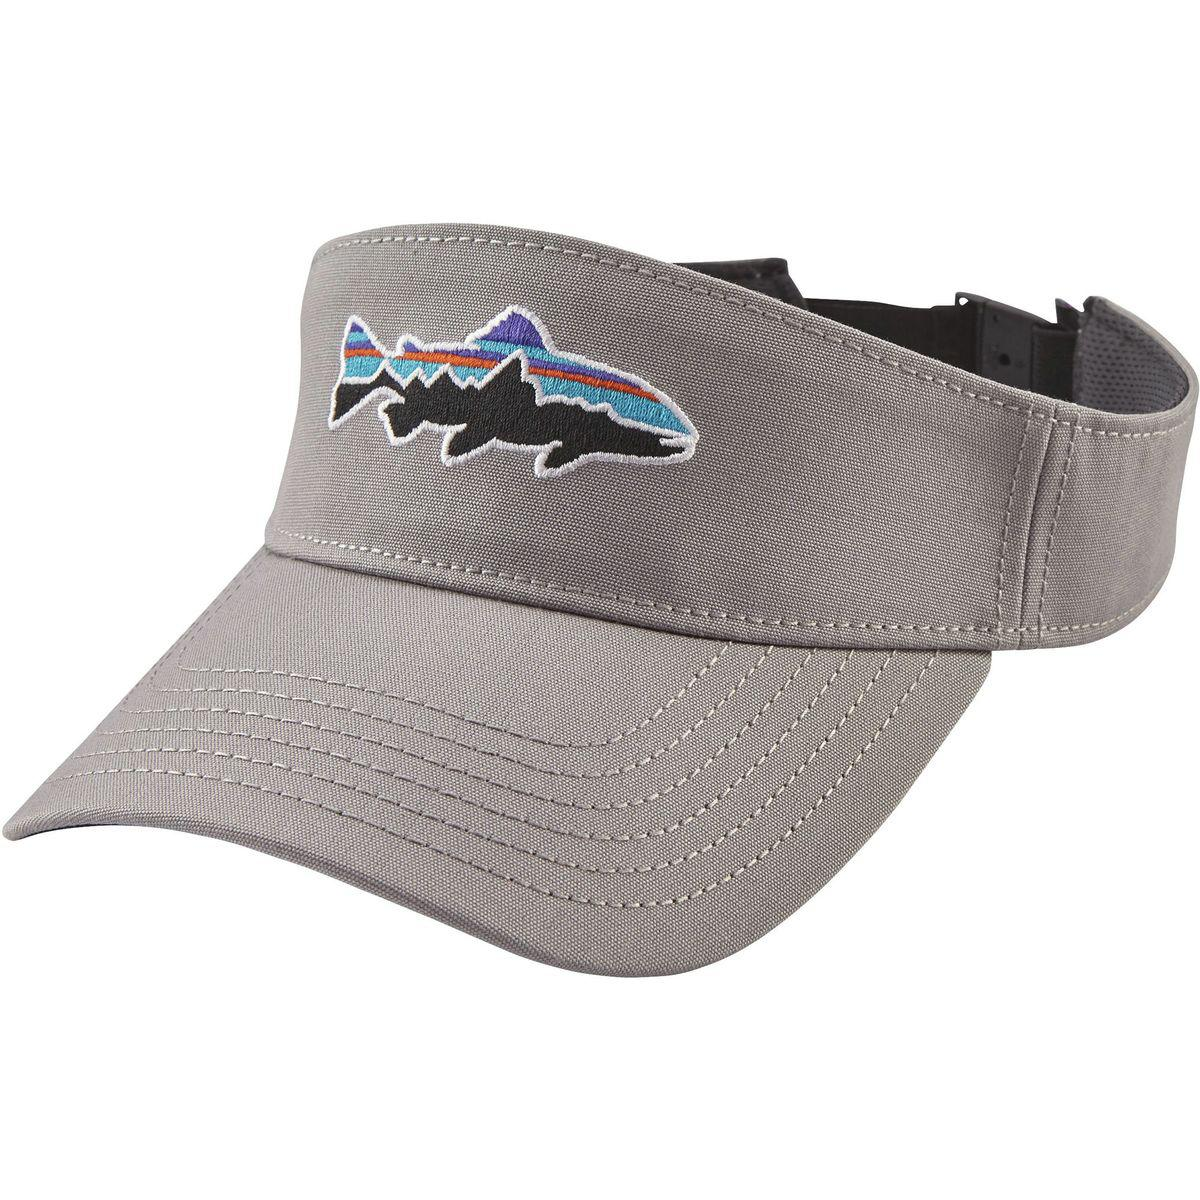 Lyst - Patagonia Fitz Roy Trout Visor in Gray for Men 95f5f8c4ae